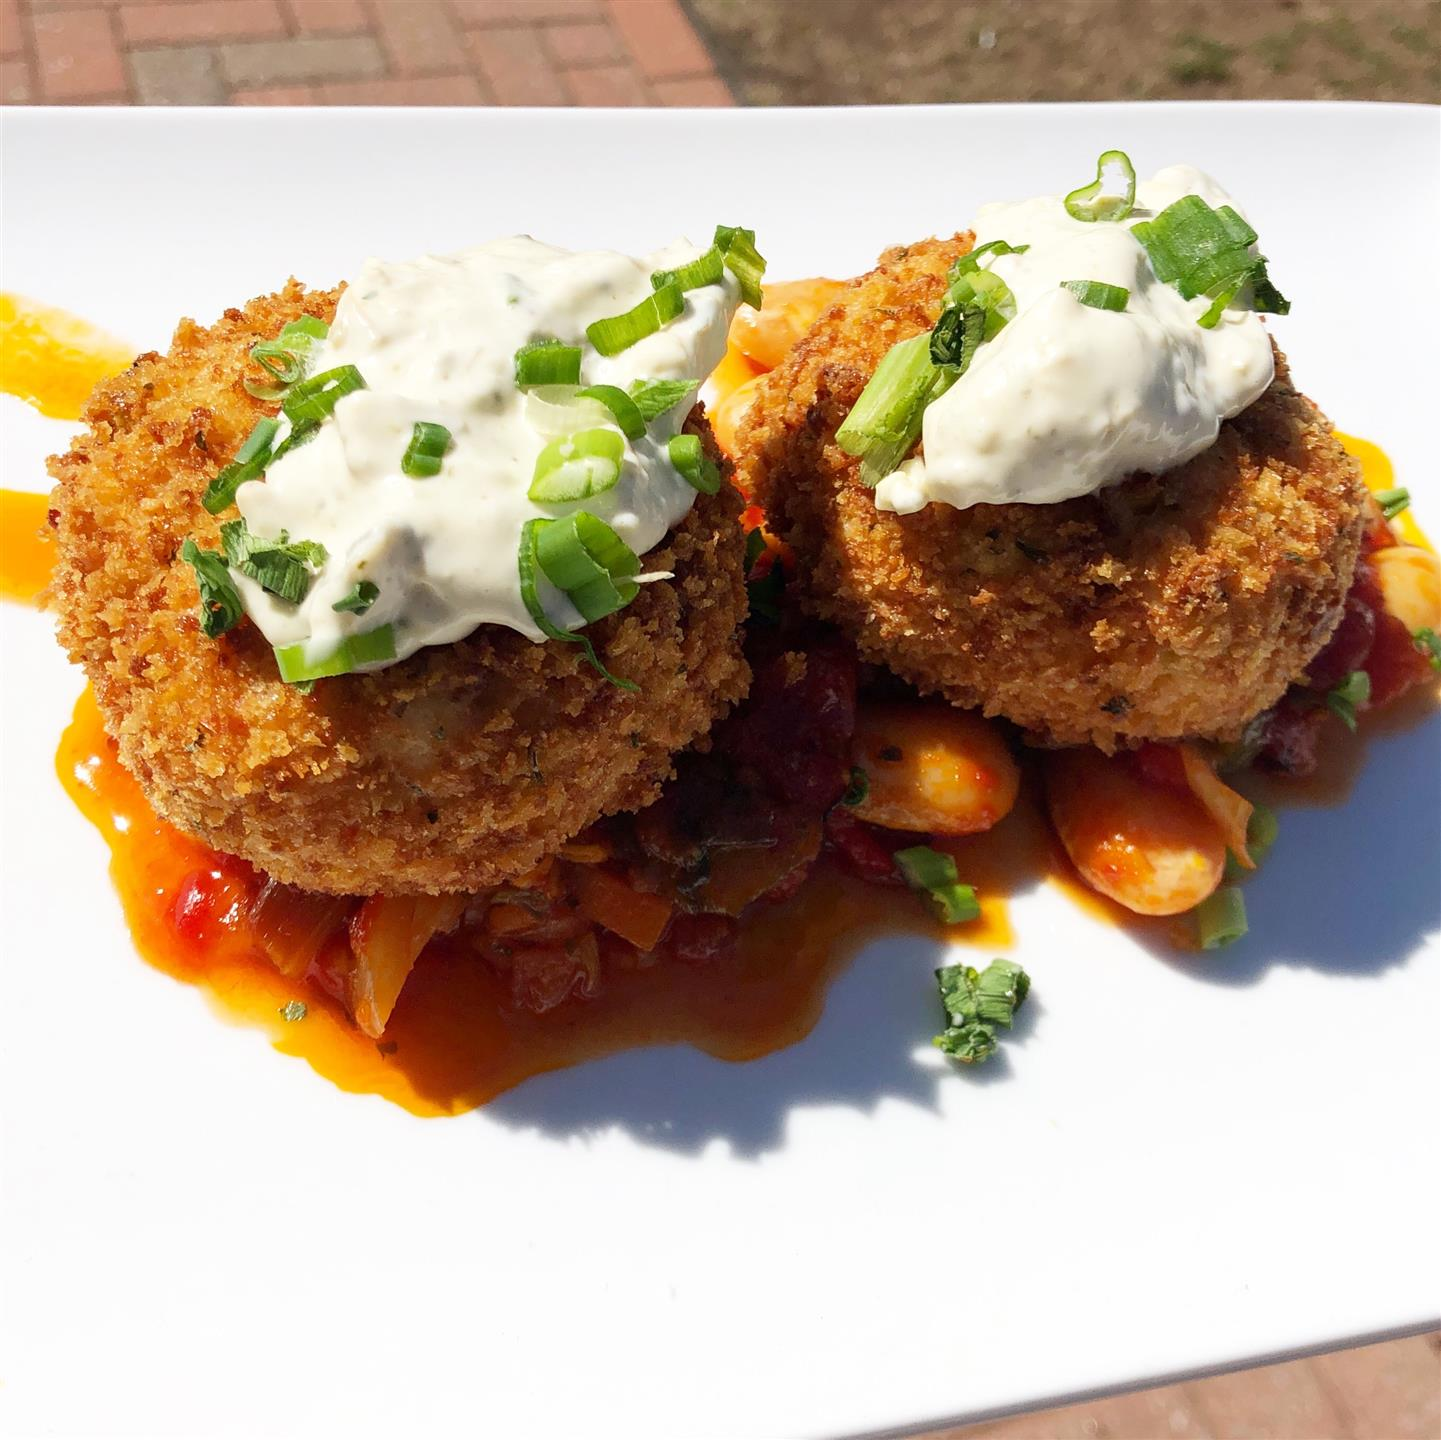 two crabcakes on a bed of veggies